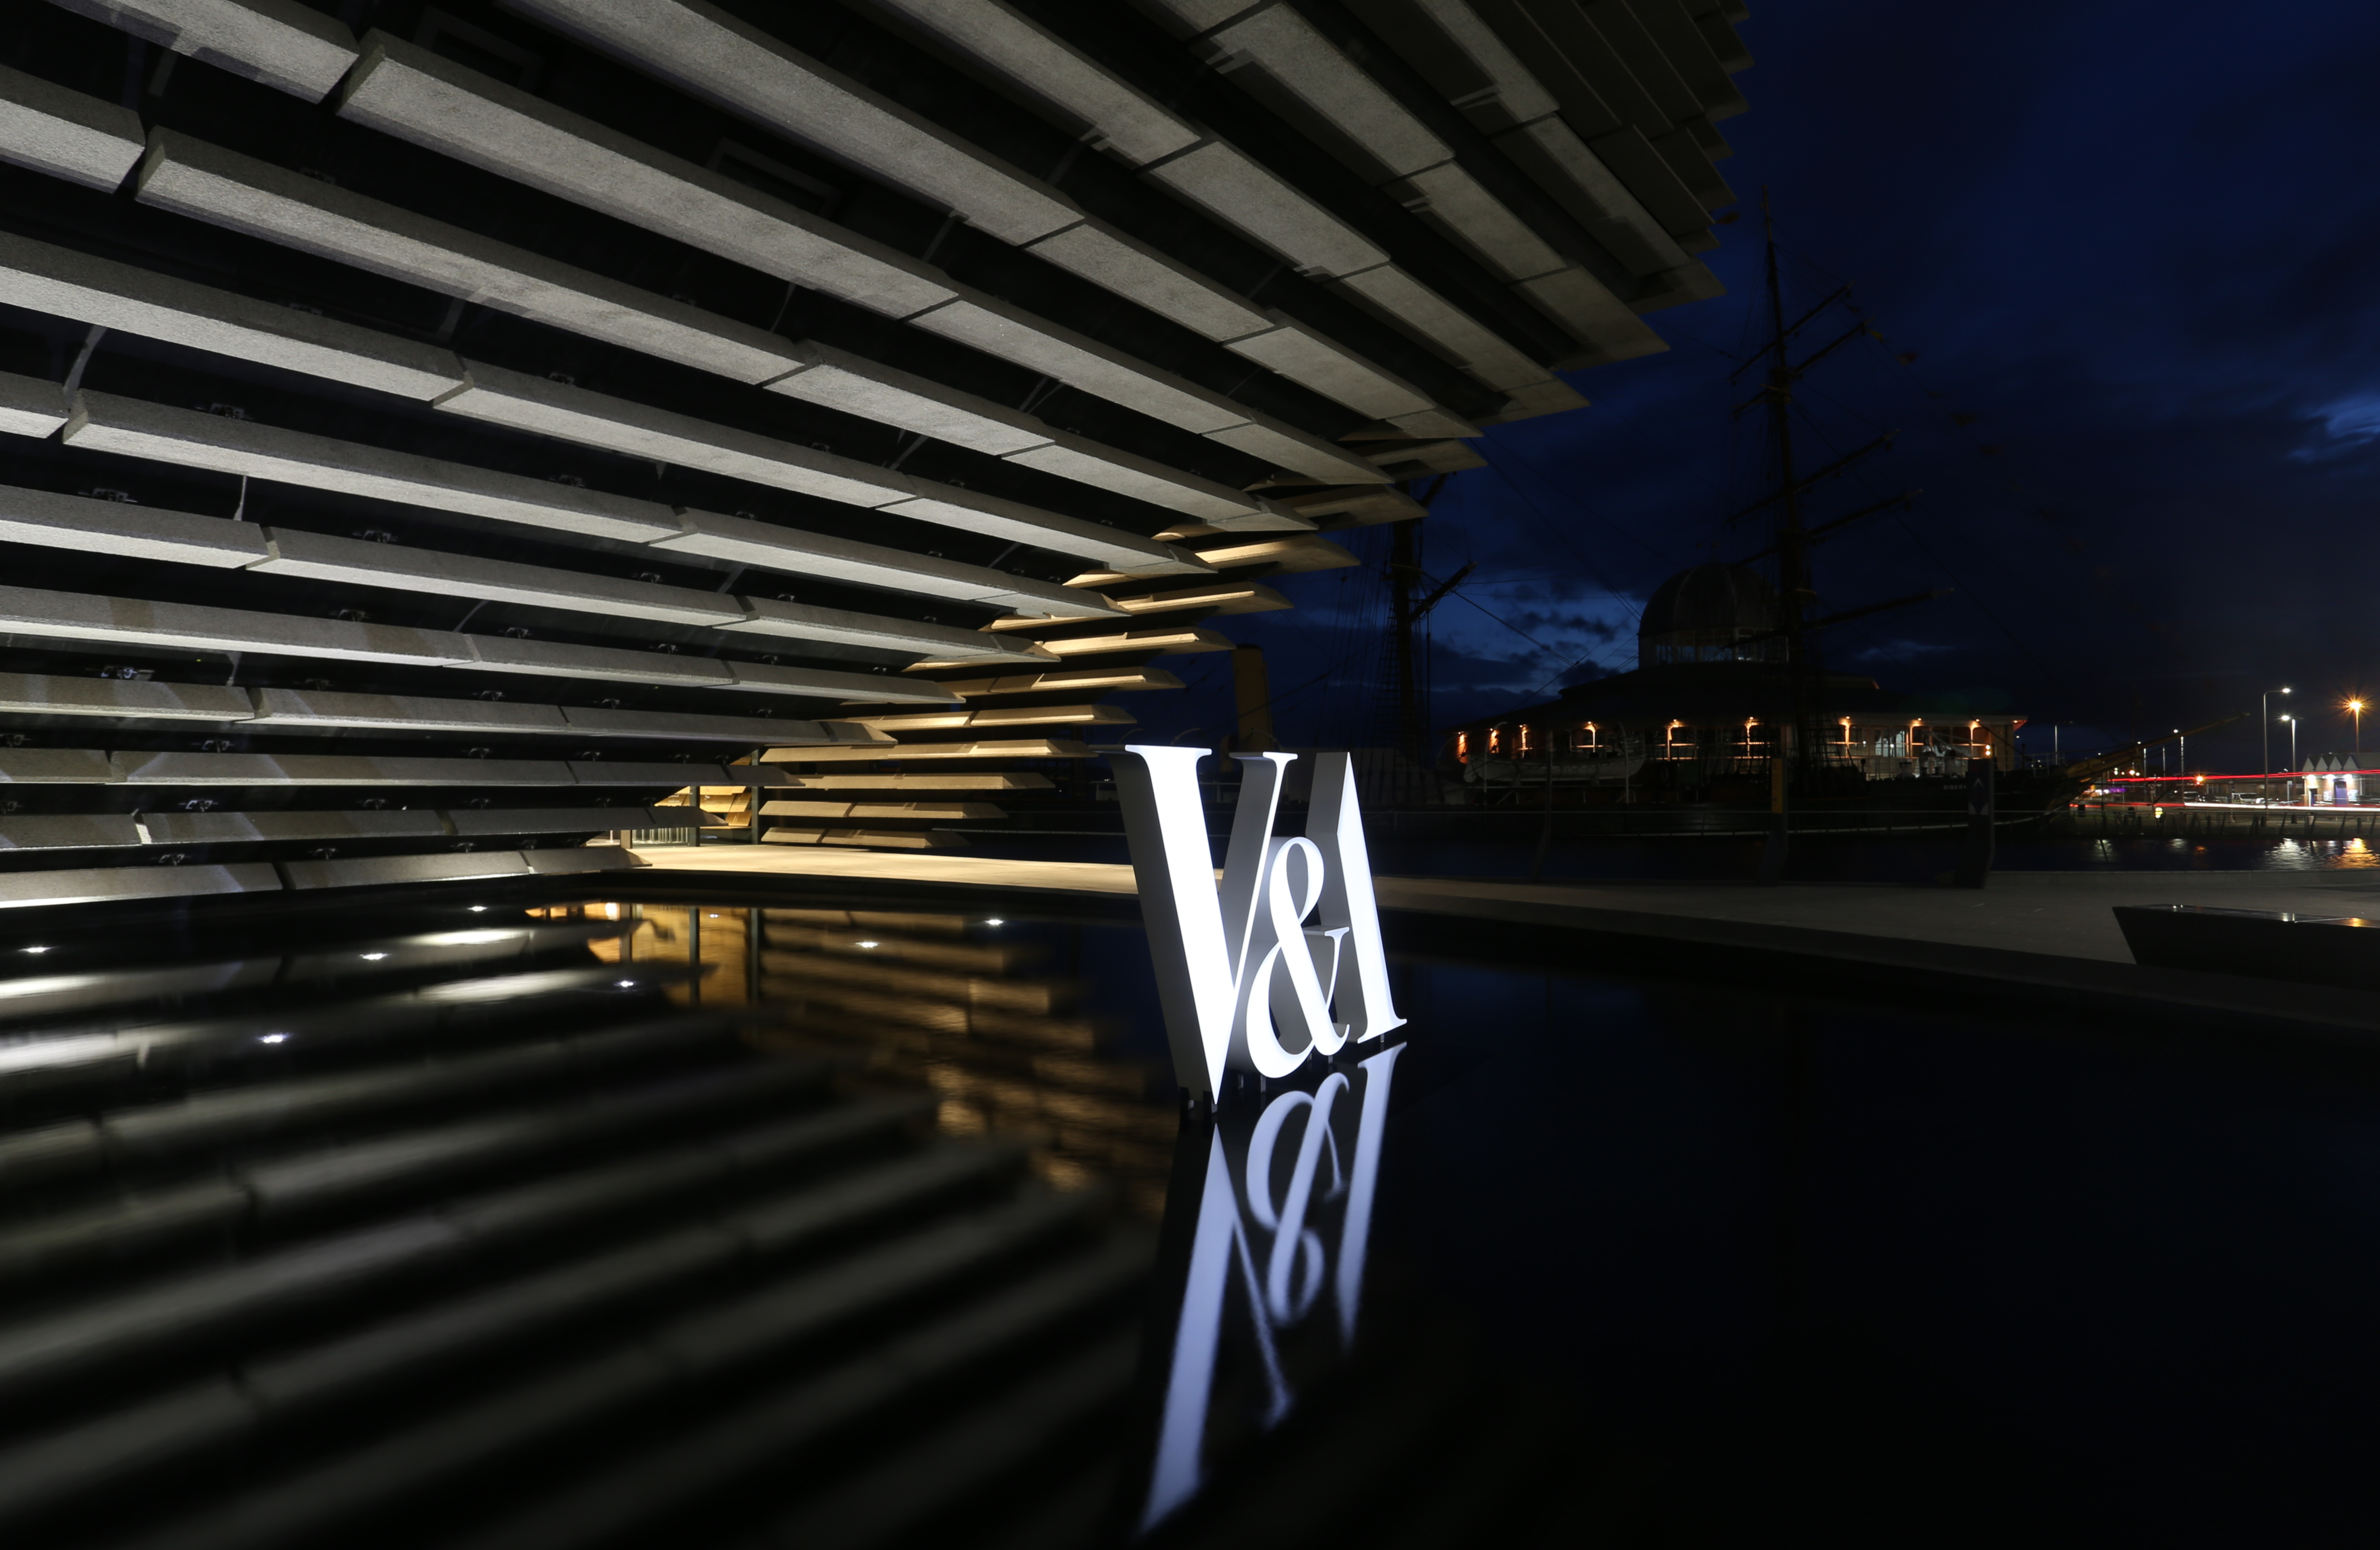 V&A Museum (Dundee) brand signage